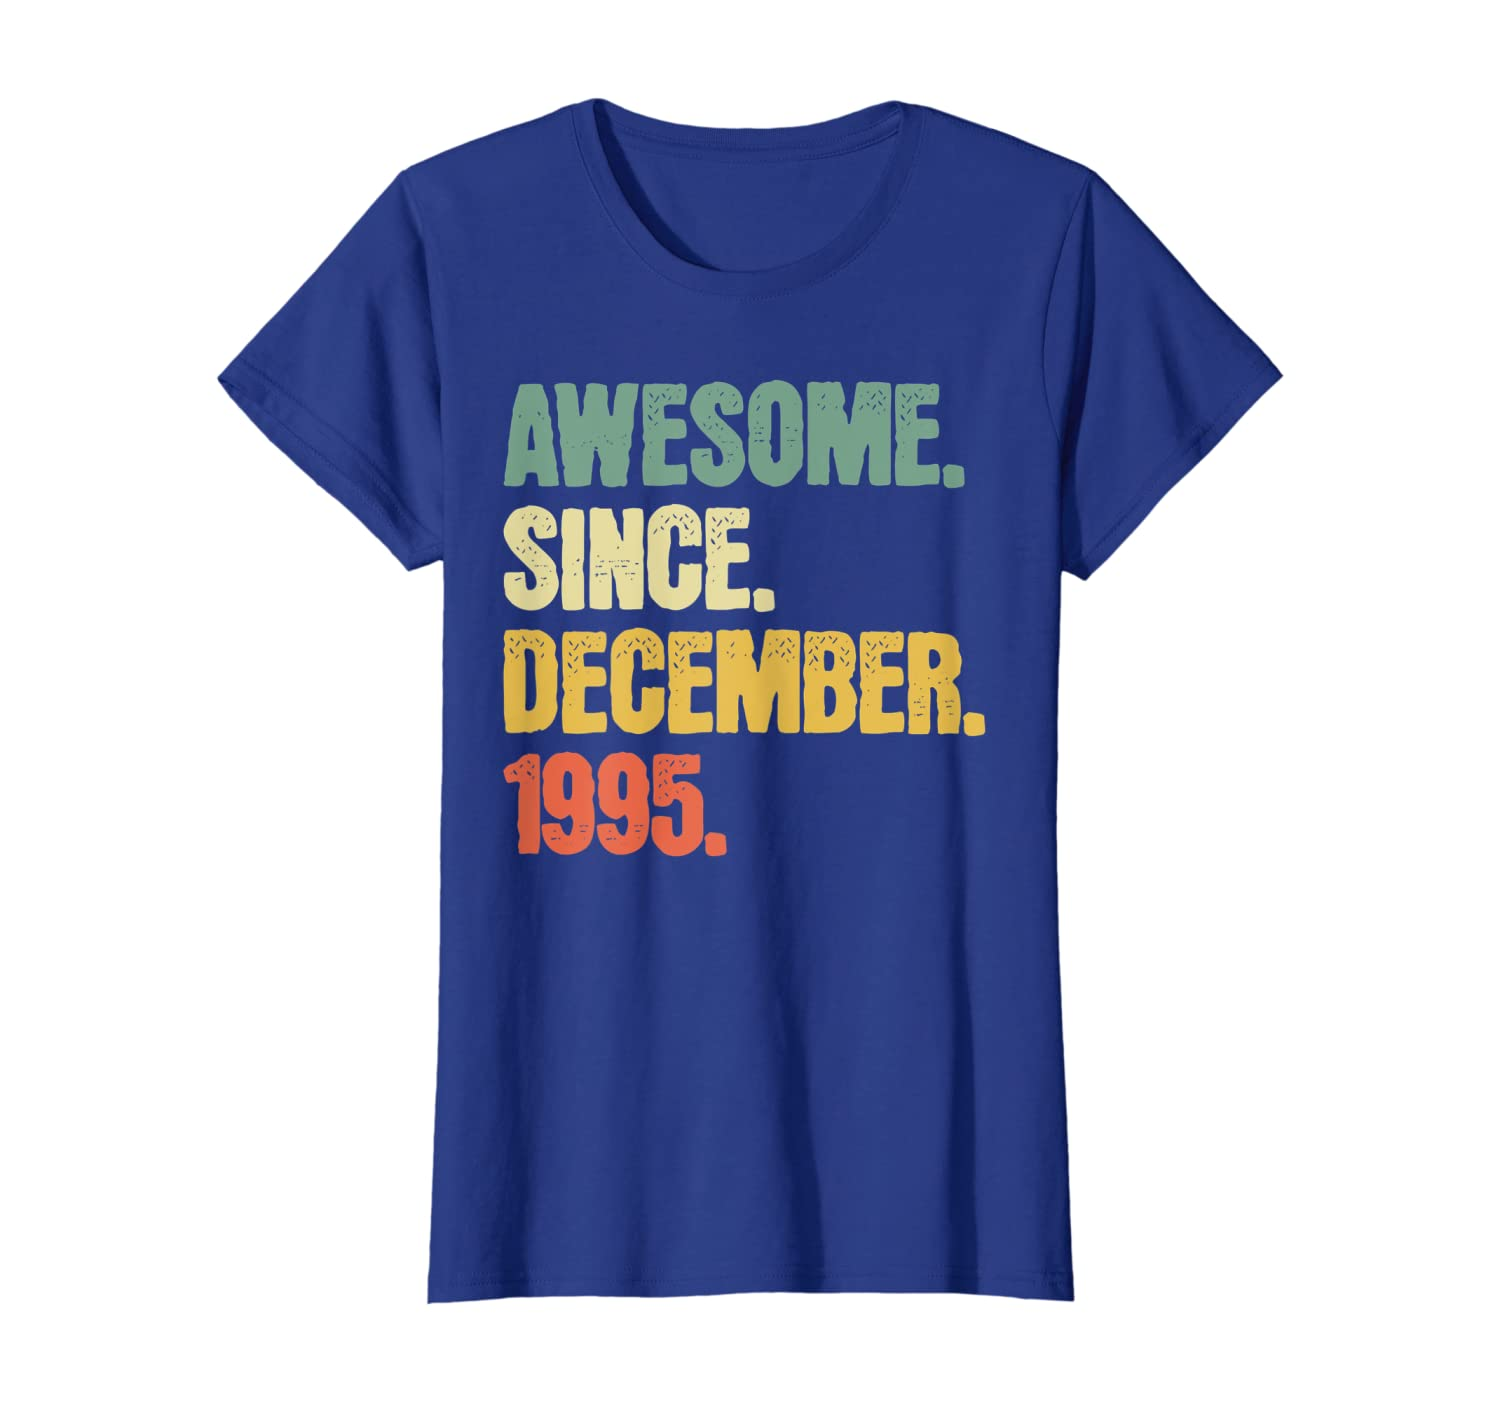 25 Year Old Birthday Gifts Shirt Awesome Since December 1995 T-Shirt Women